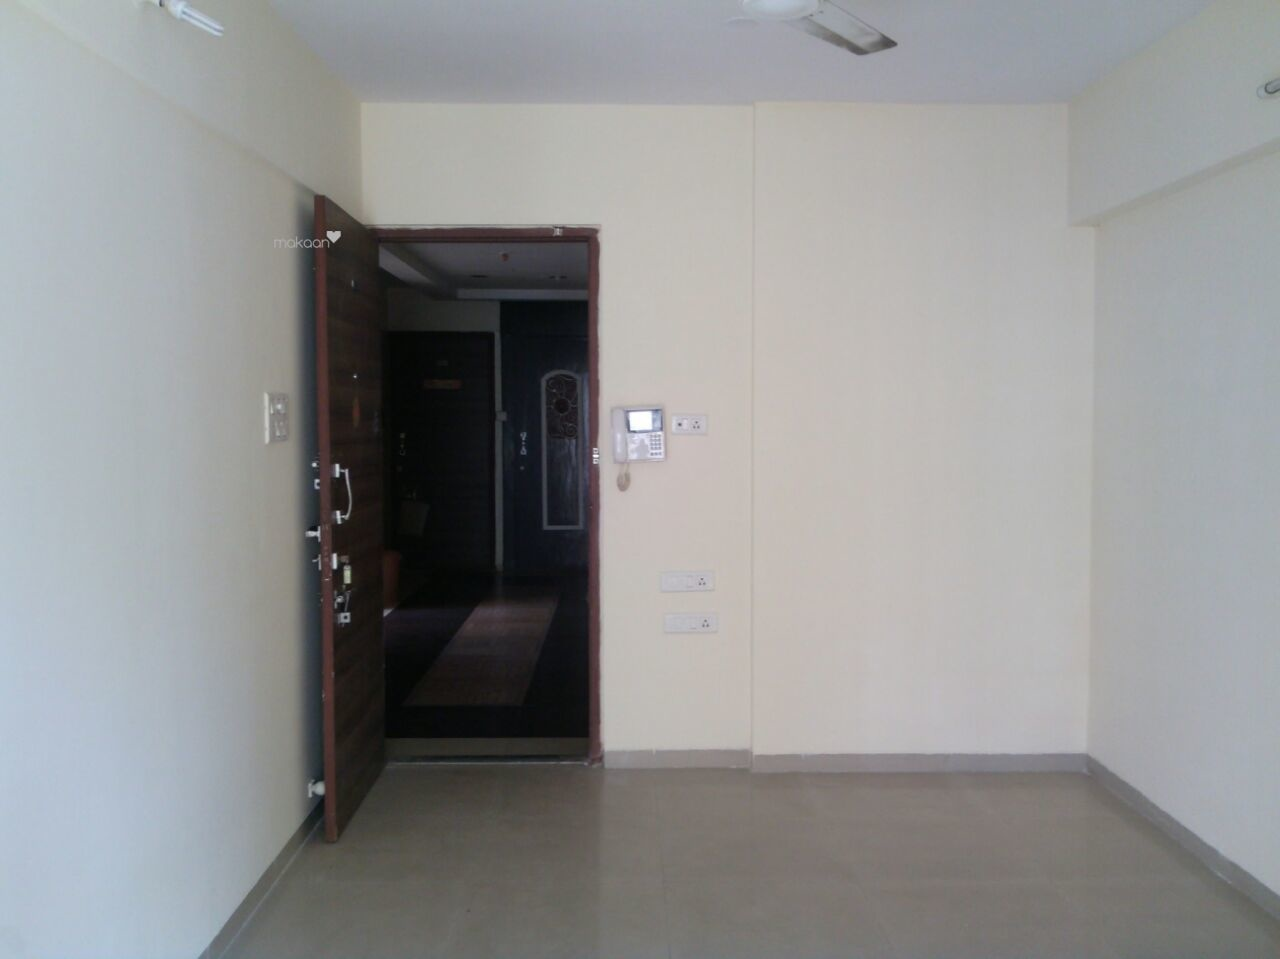 1240 sq ft 2BHK 2BHK+2T (1,240 sq ft) Property By Bhoomi Enterprises In Project, Kharghar